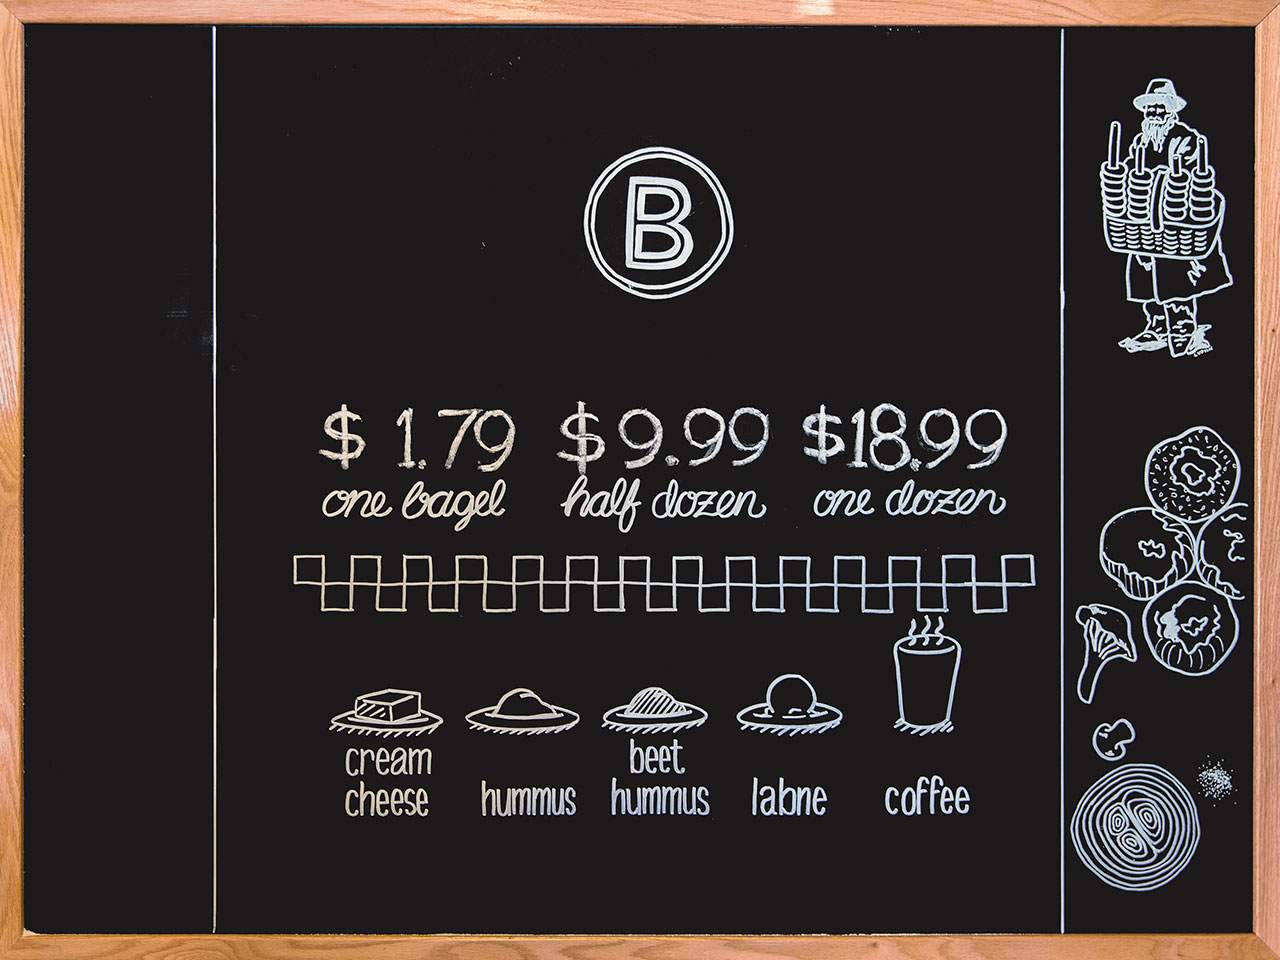 Black chalkboard with white chalked BernBaum's B logo, pricing for bagels, and illustrations of spread options